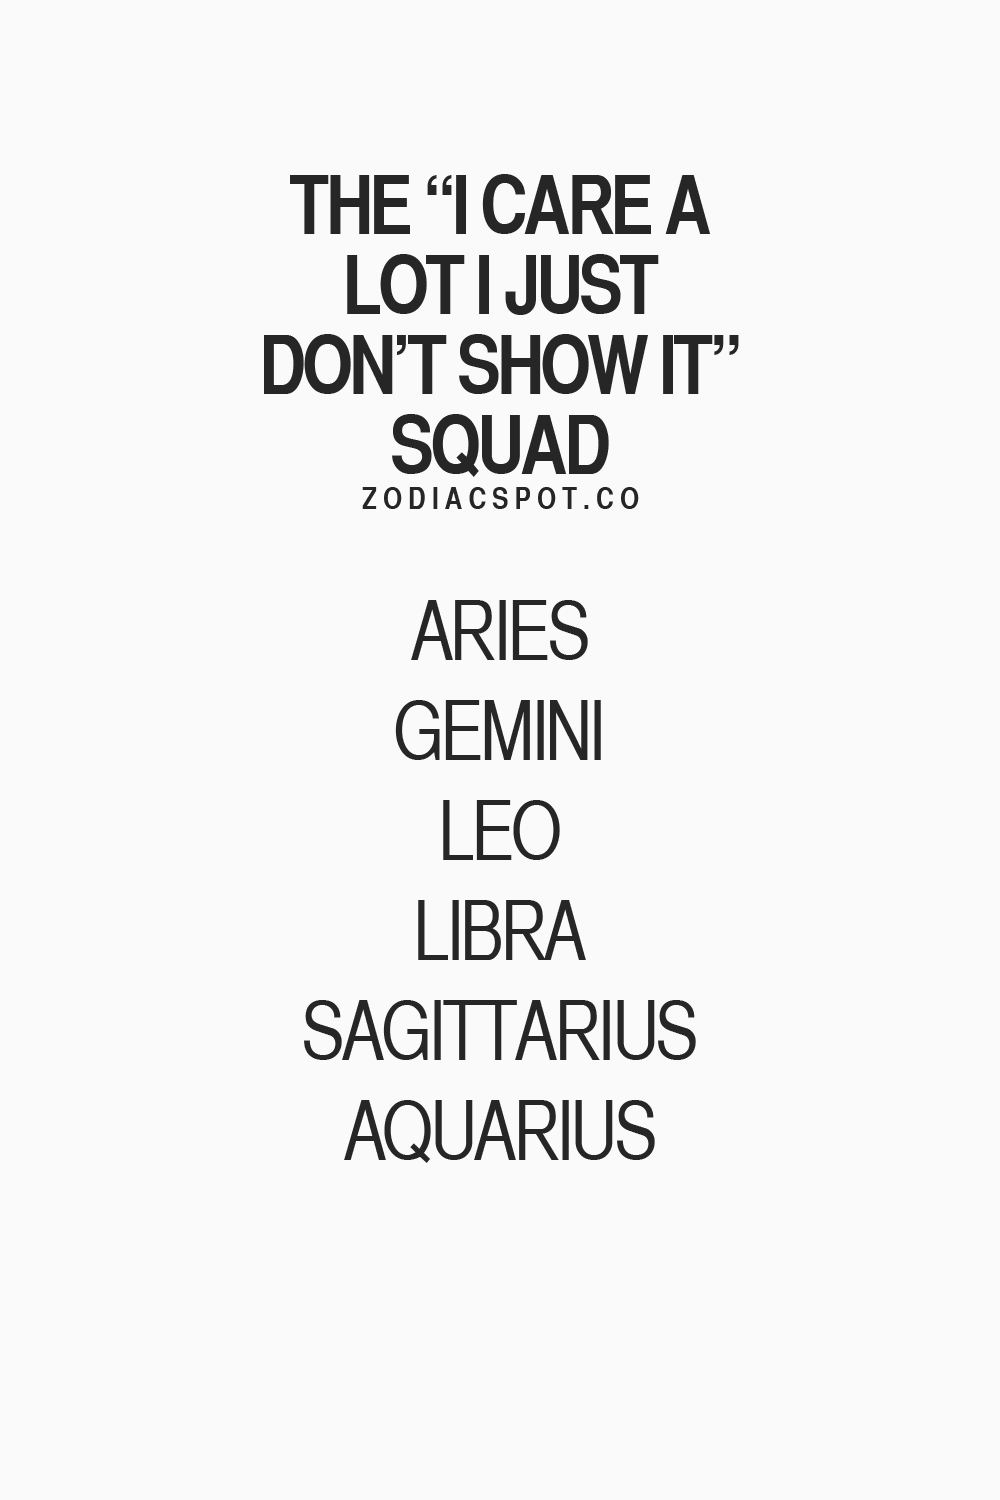 These 3 zodiac signs will most likely get you mad